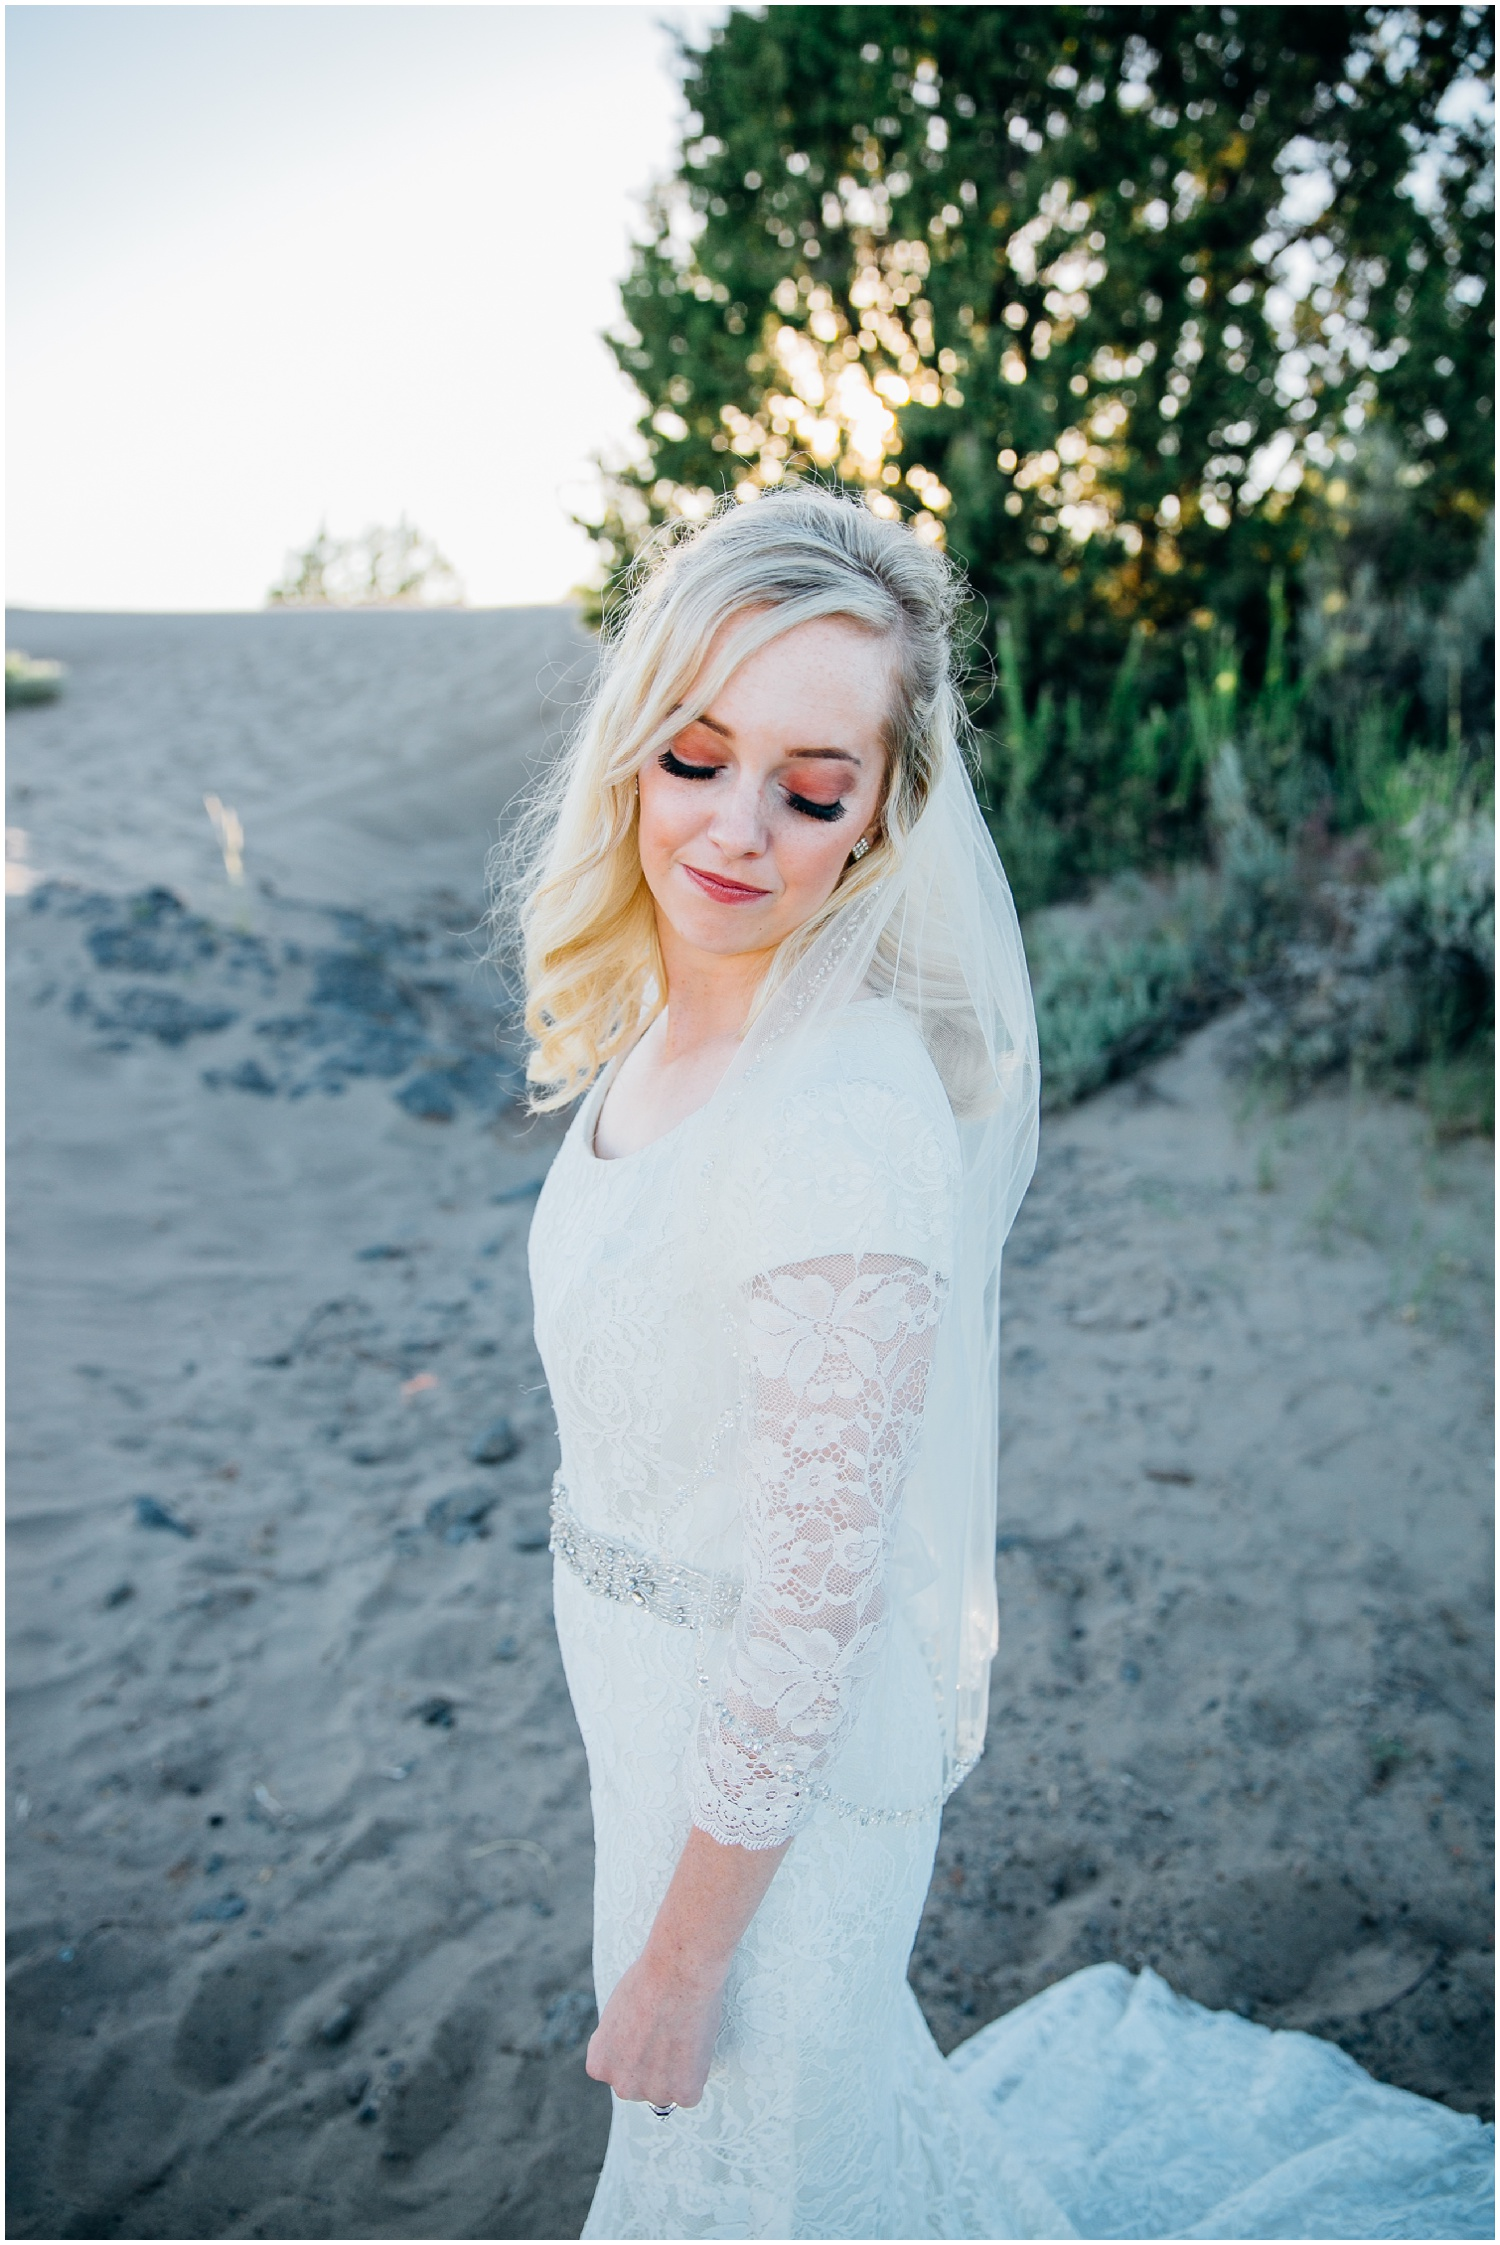 saint-anthony-sand-dunes-bridals-idaho-engagements-colorado-wyoming-wedding-photographer_0714.jpg